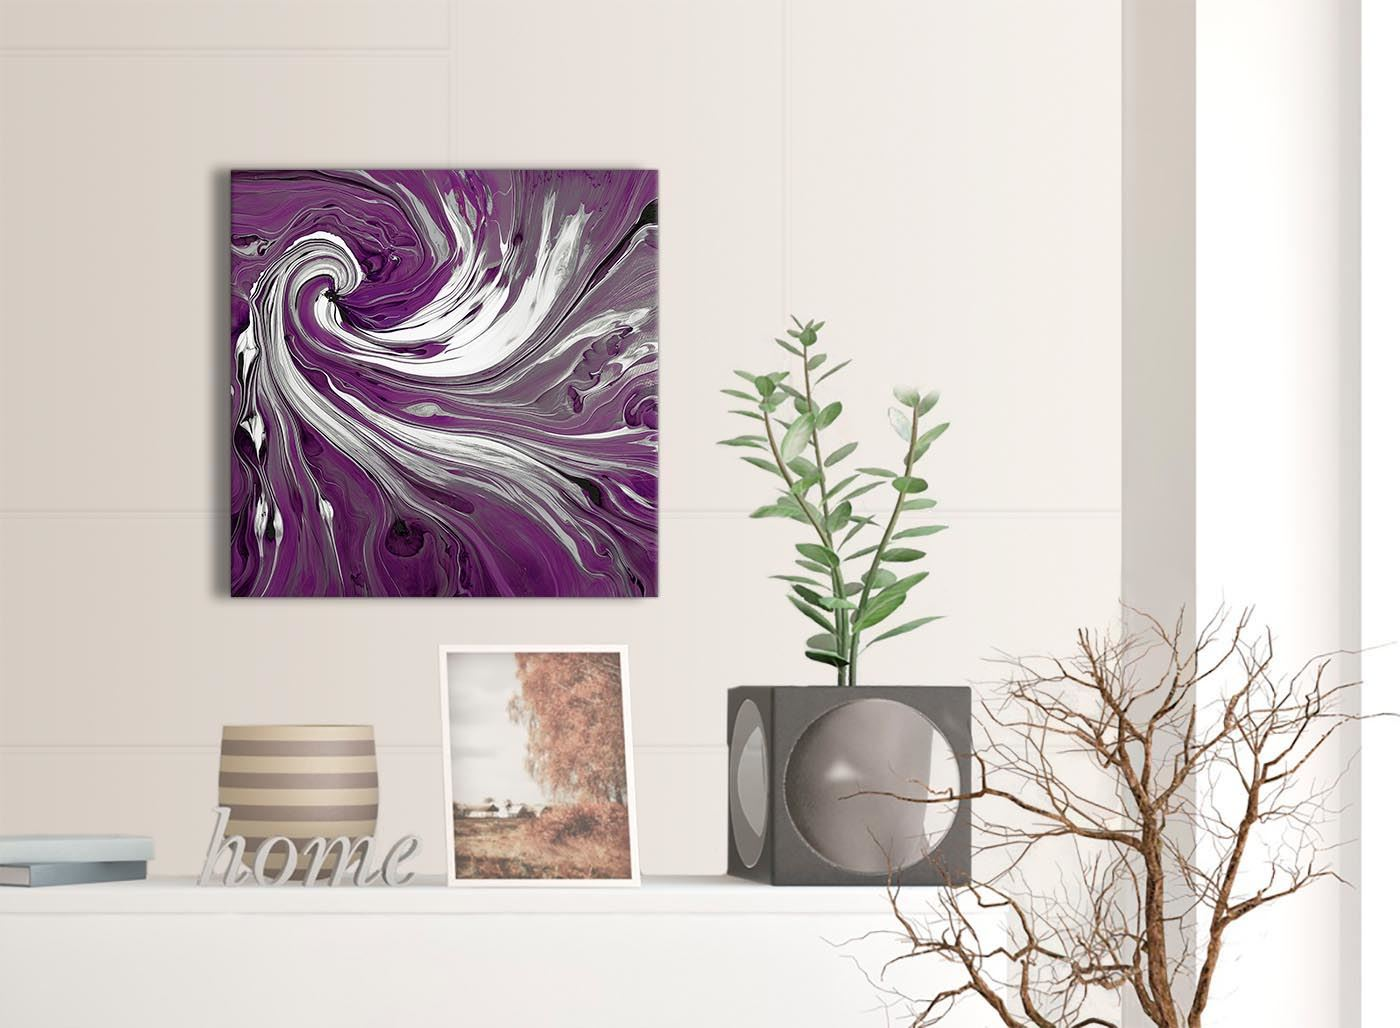 49cm Square Purple White Swirls Modern Abstract Canvas Wall Art 1s353s